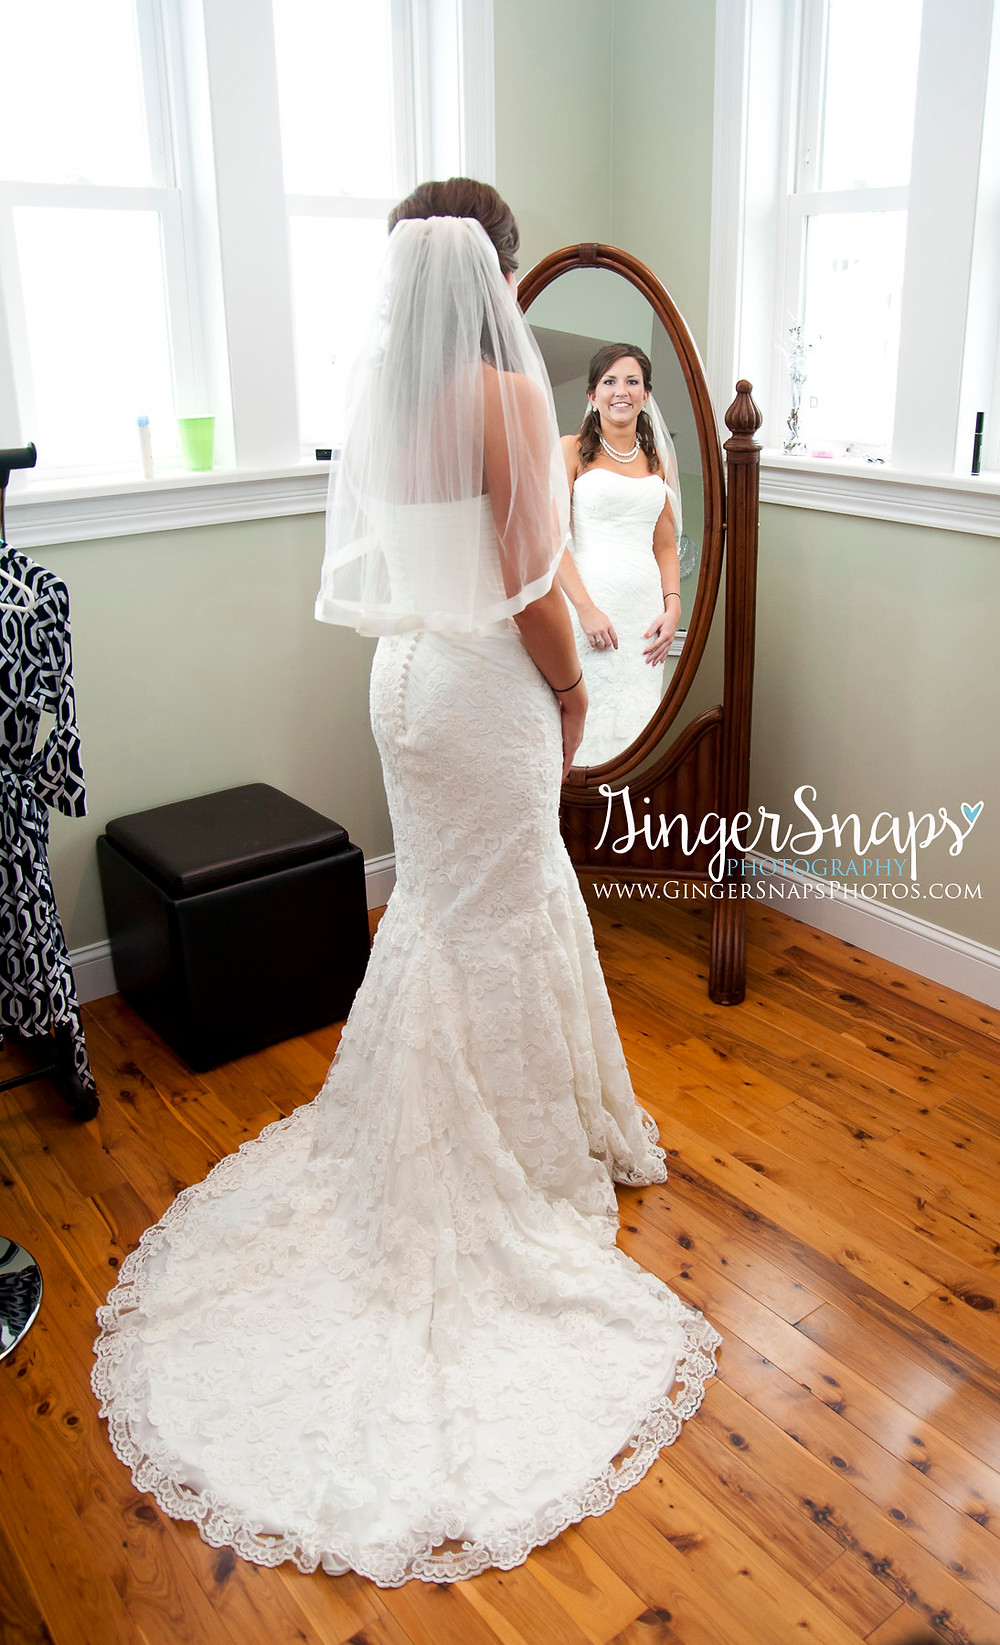 GingerSnaps Photography - 011.jpg